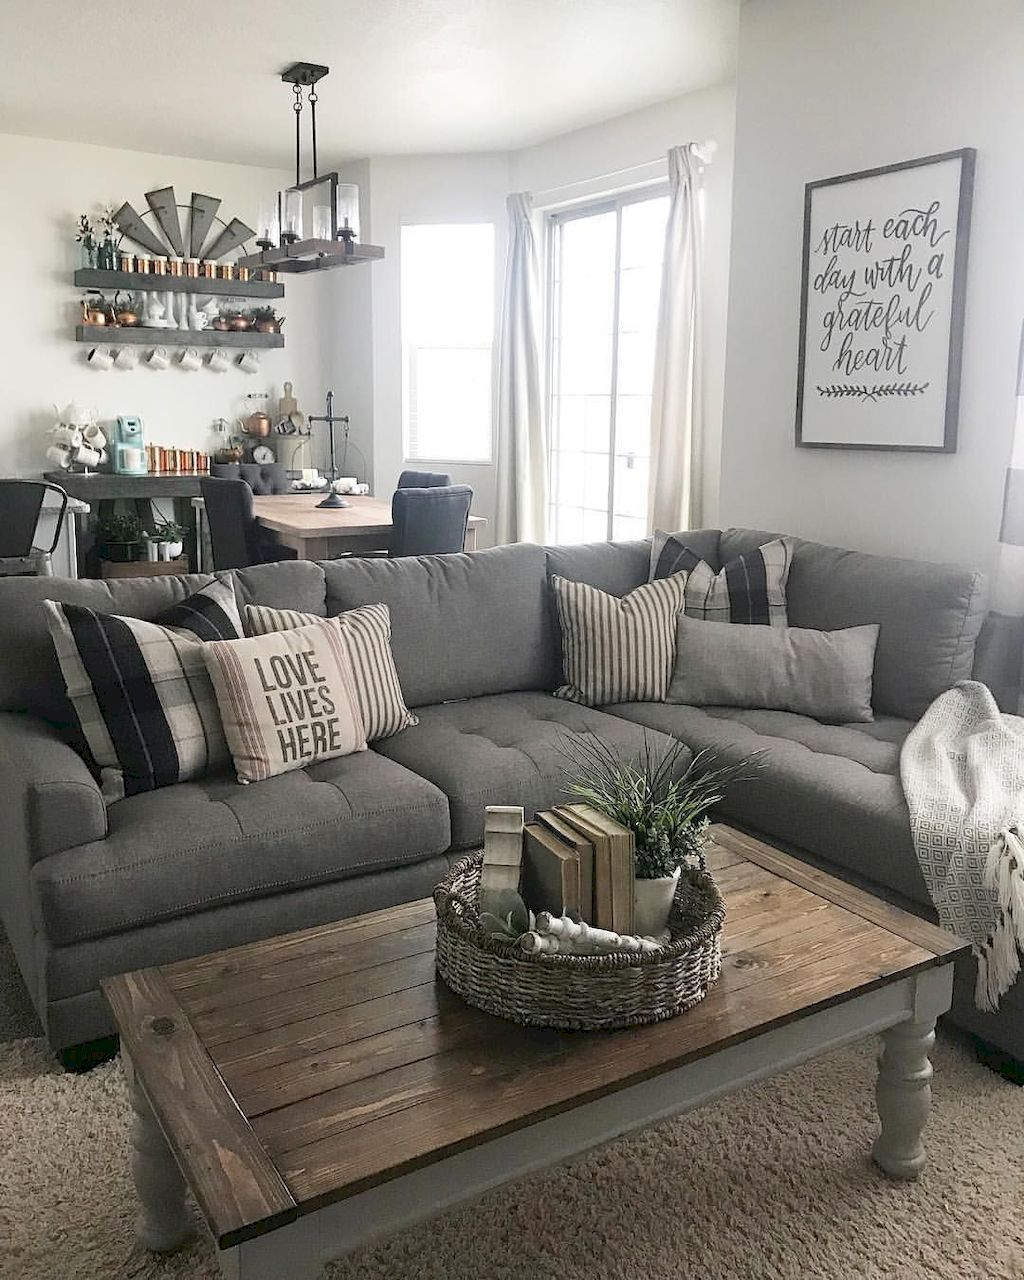 Grey and White with Wooden Accents